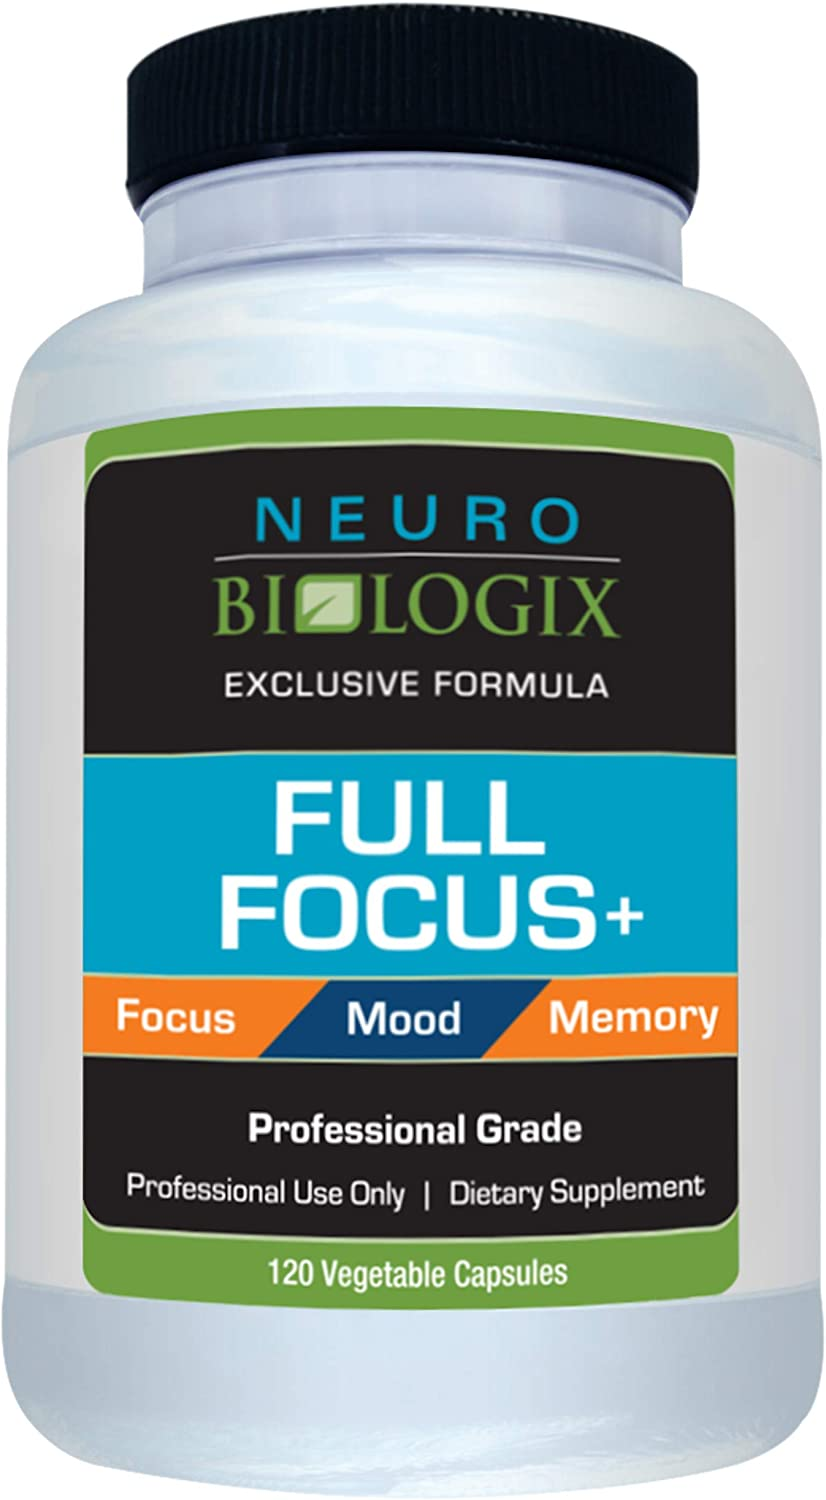 Neuro biologix Full Focus Concentration and Mood Supplement 120 Capsules